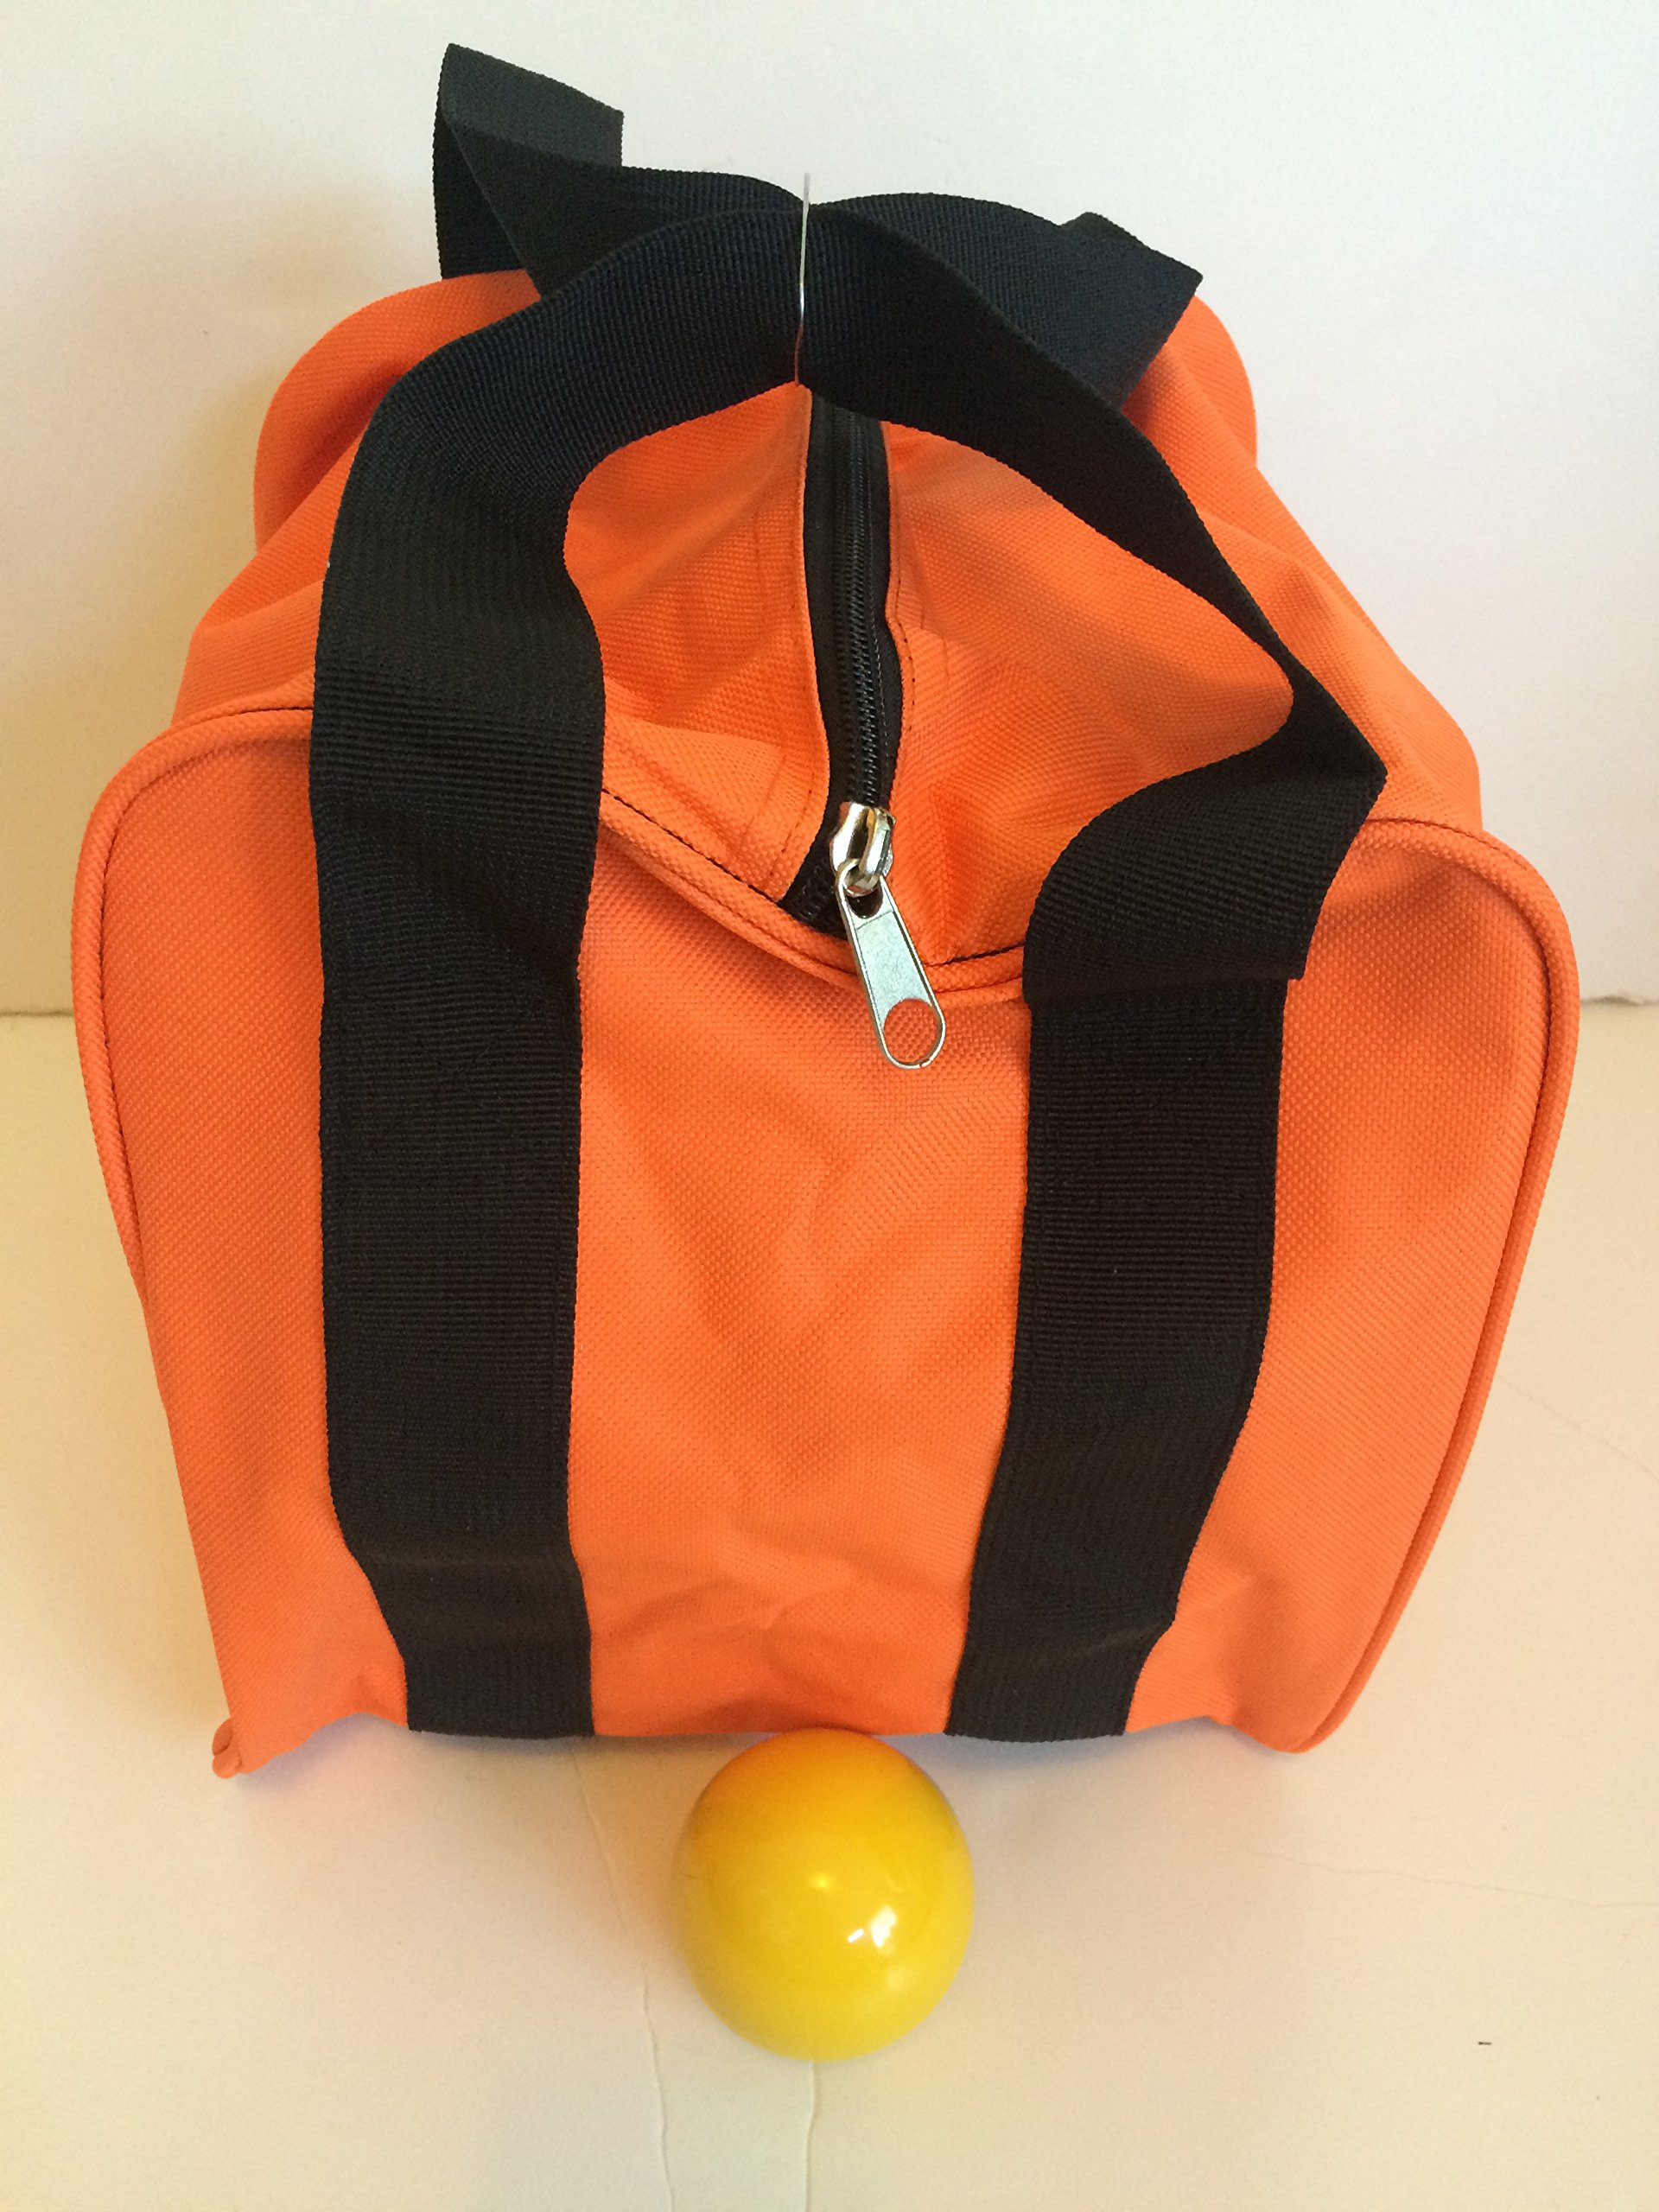 Unique Bocce Accessories Package - Extra Heavy Duty Nylon Bocce Bag (Orange with Black Handles) and yellow pallina